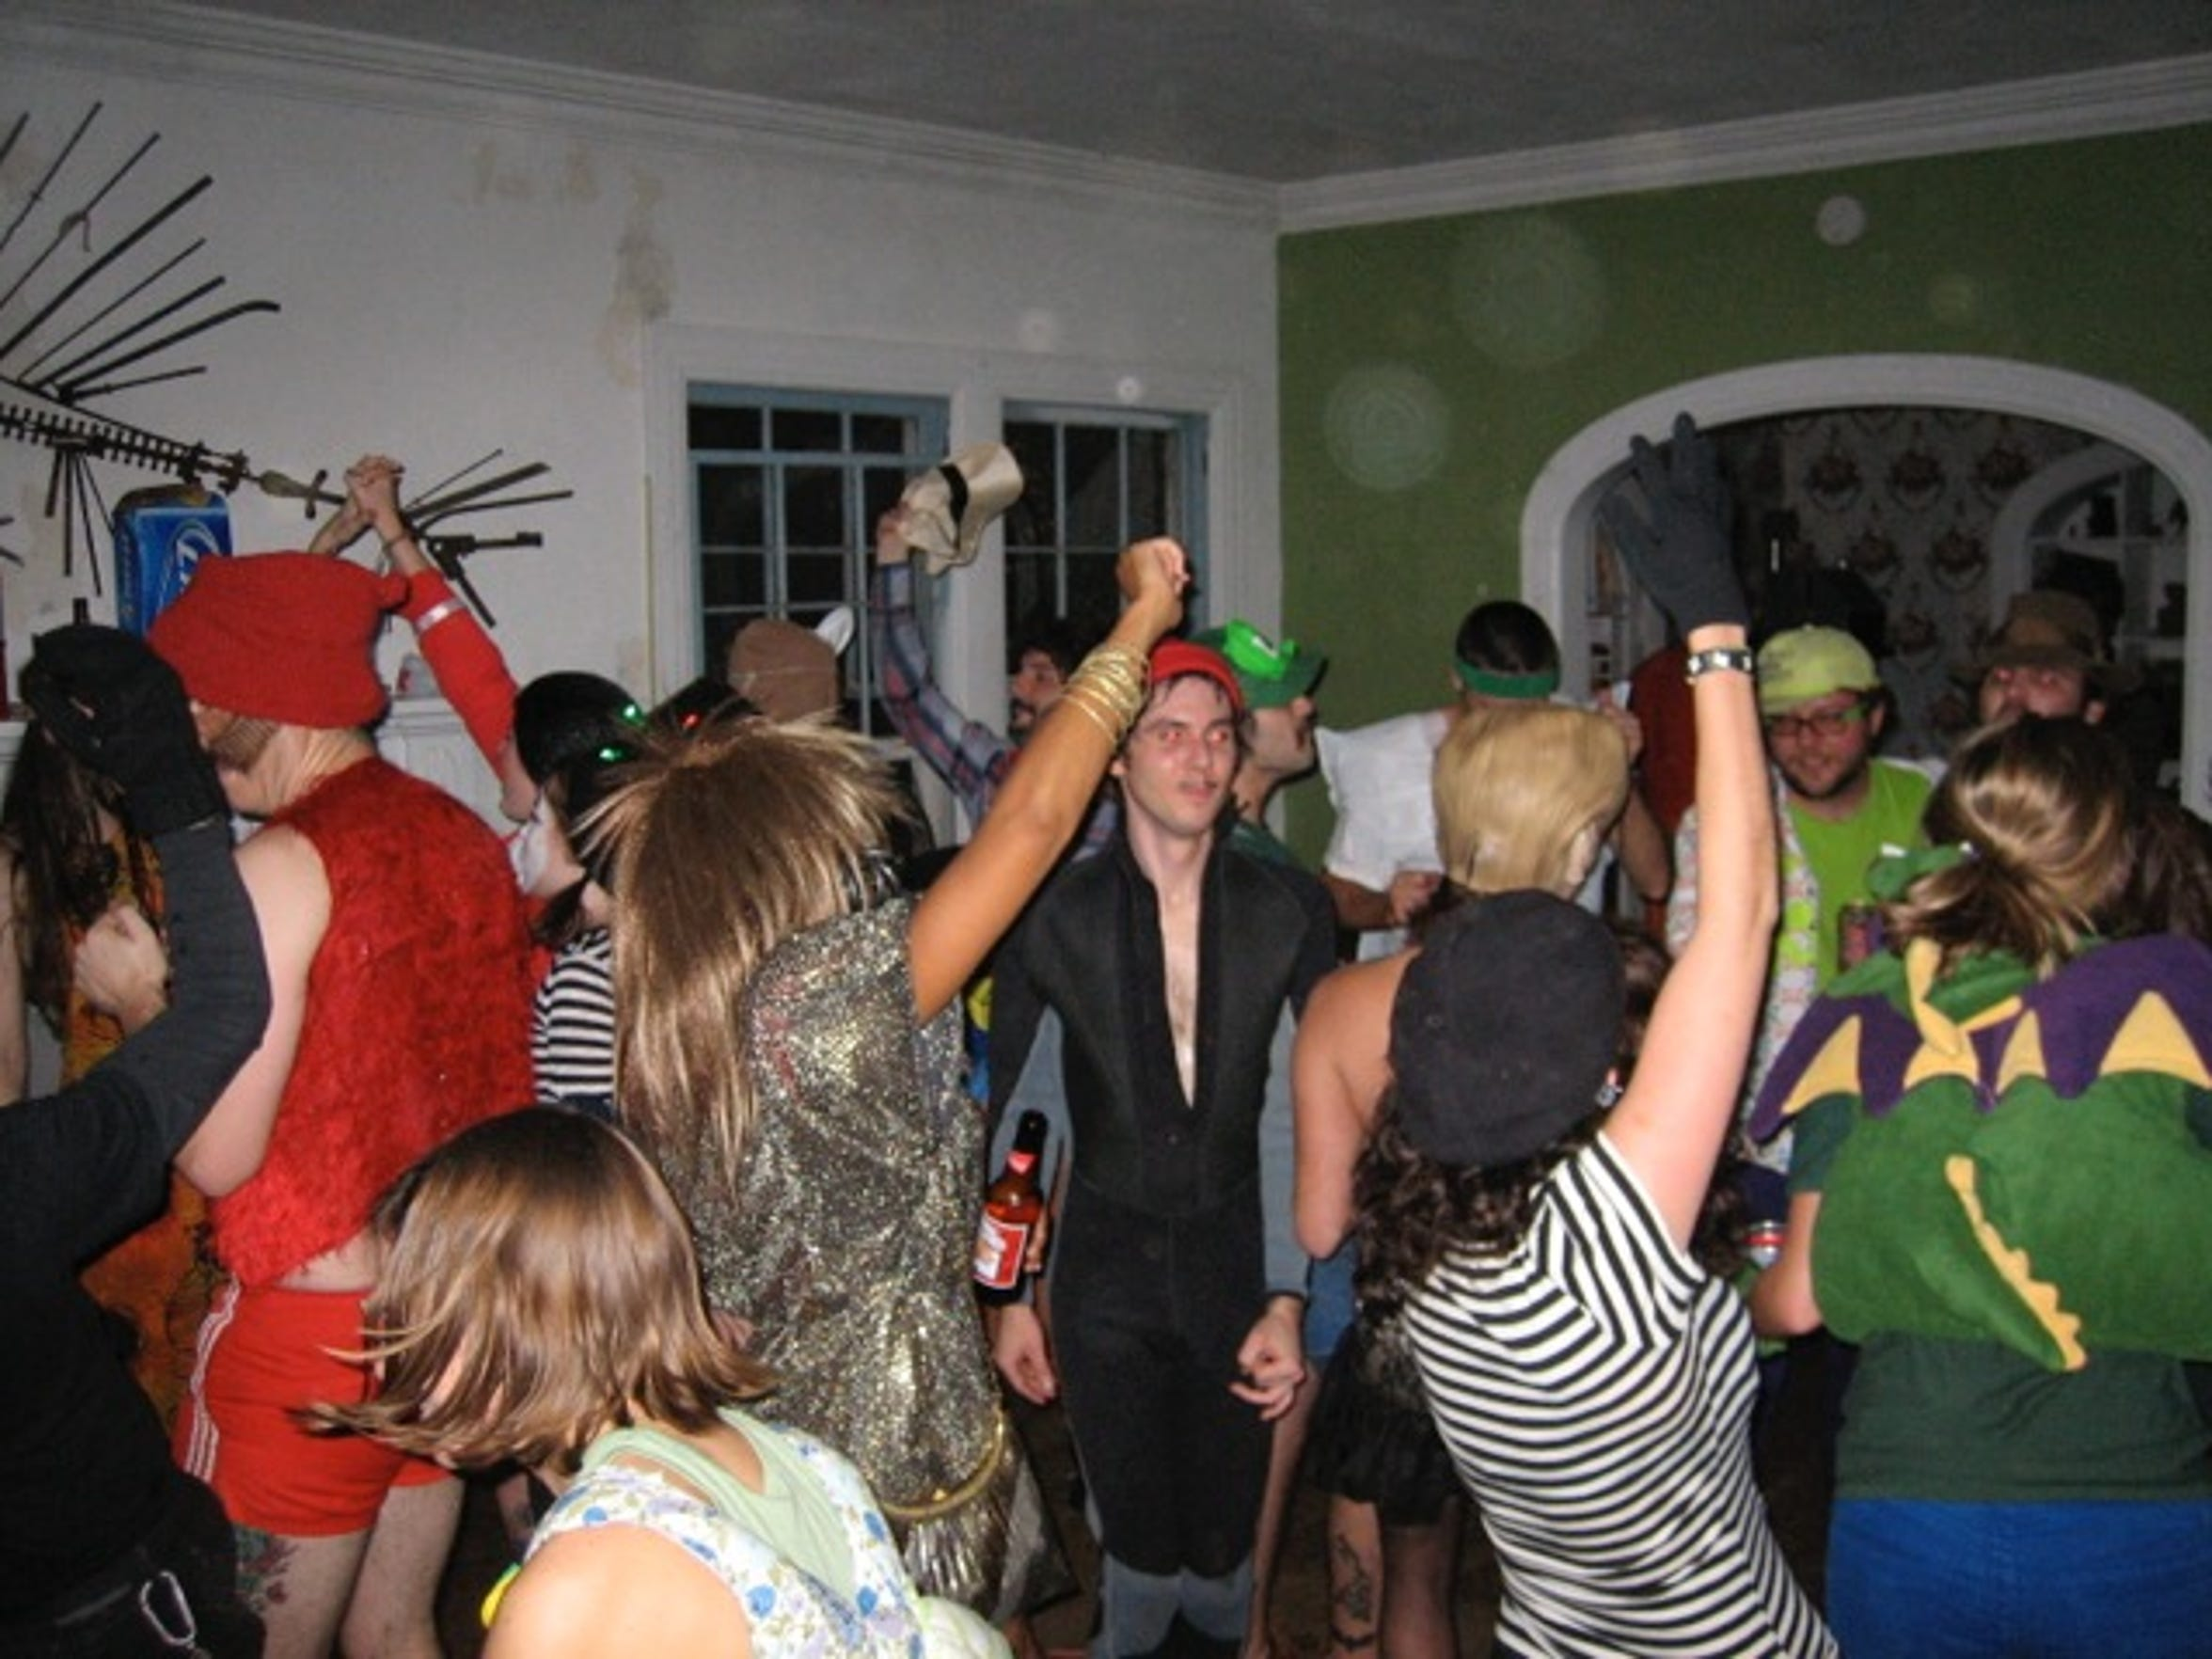 Party-goers flocked to Charles Mansion for epic parties that attracted swarms of college students and residents.